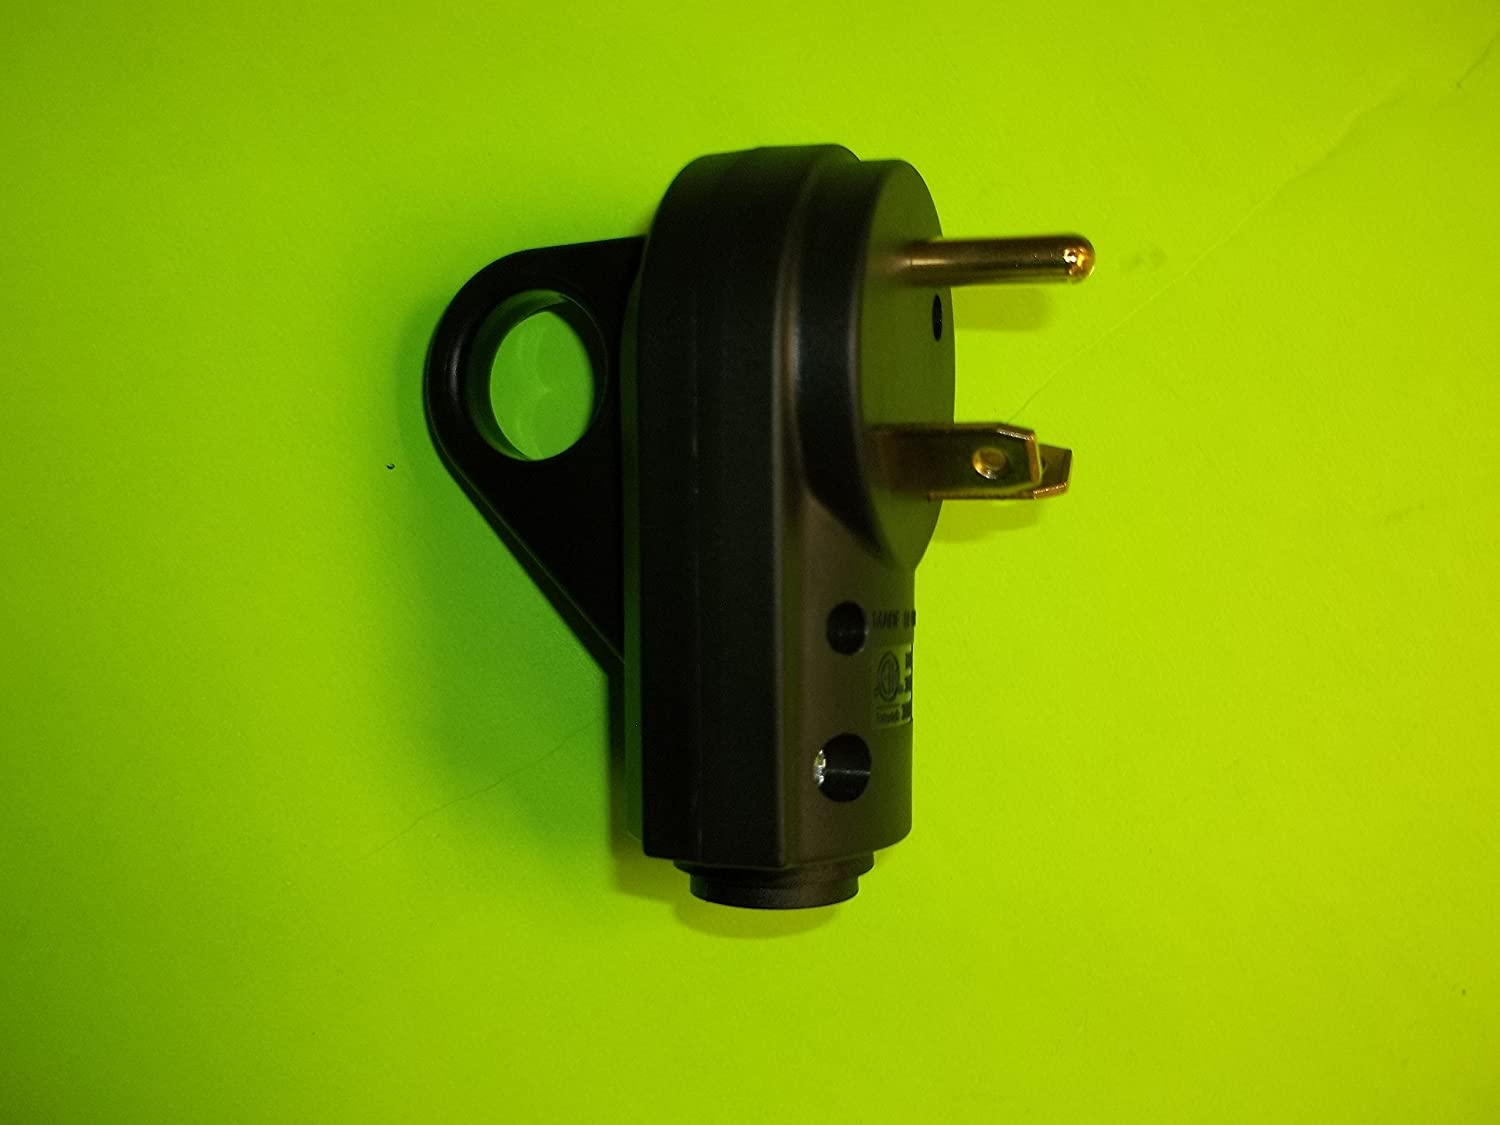 30 amp replacement power cord end for RV or extention cords